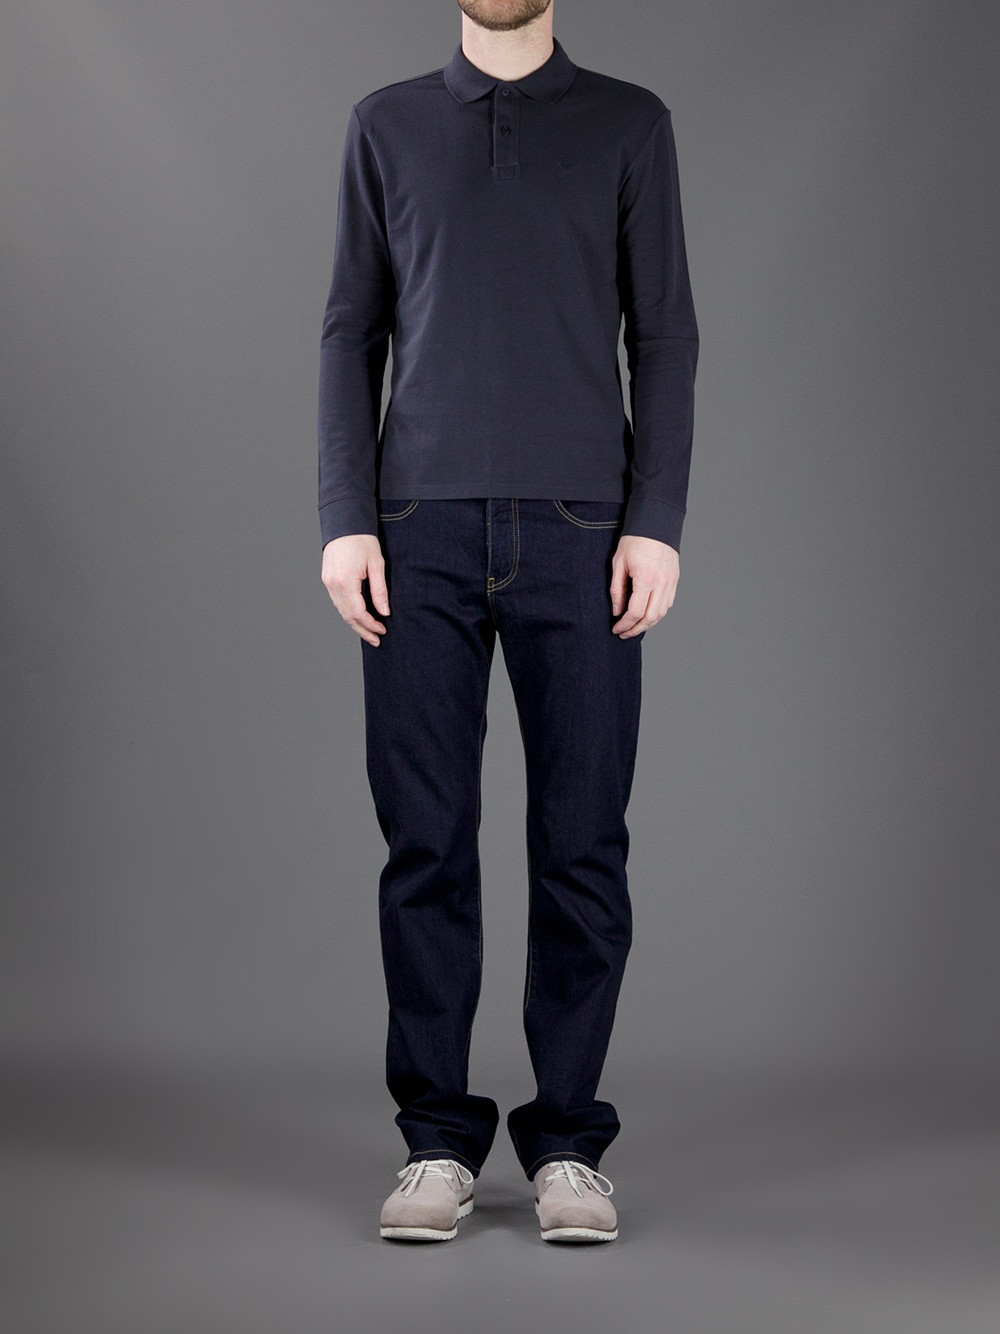 70c7916dbe Armani jeans Long Sleeve Polo Shirt in Blue for Men